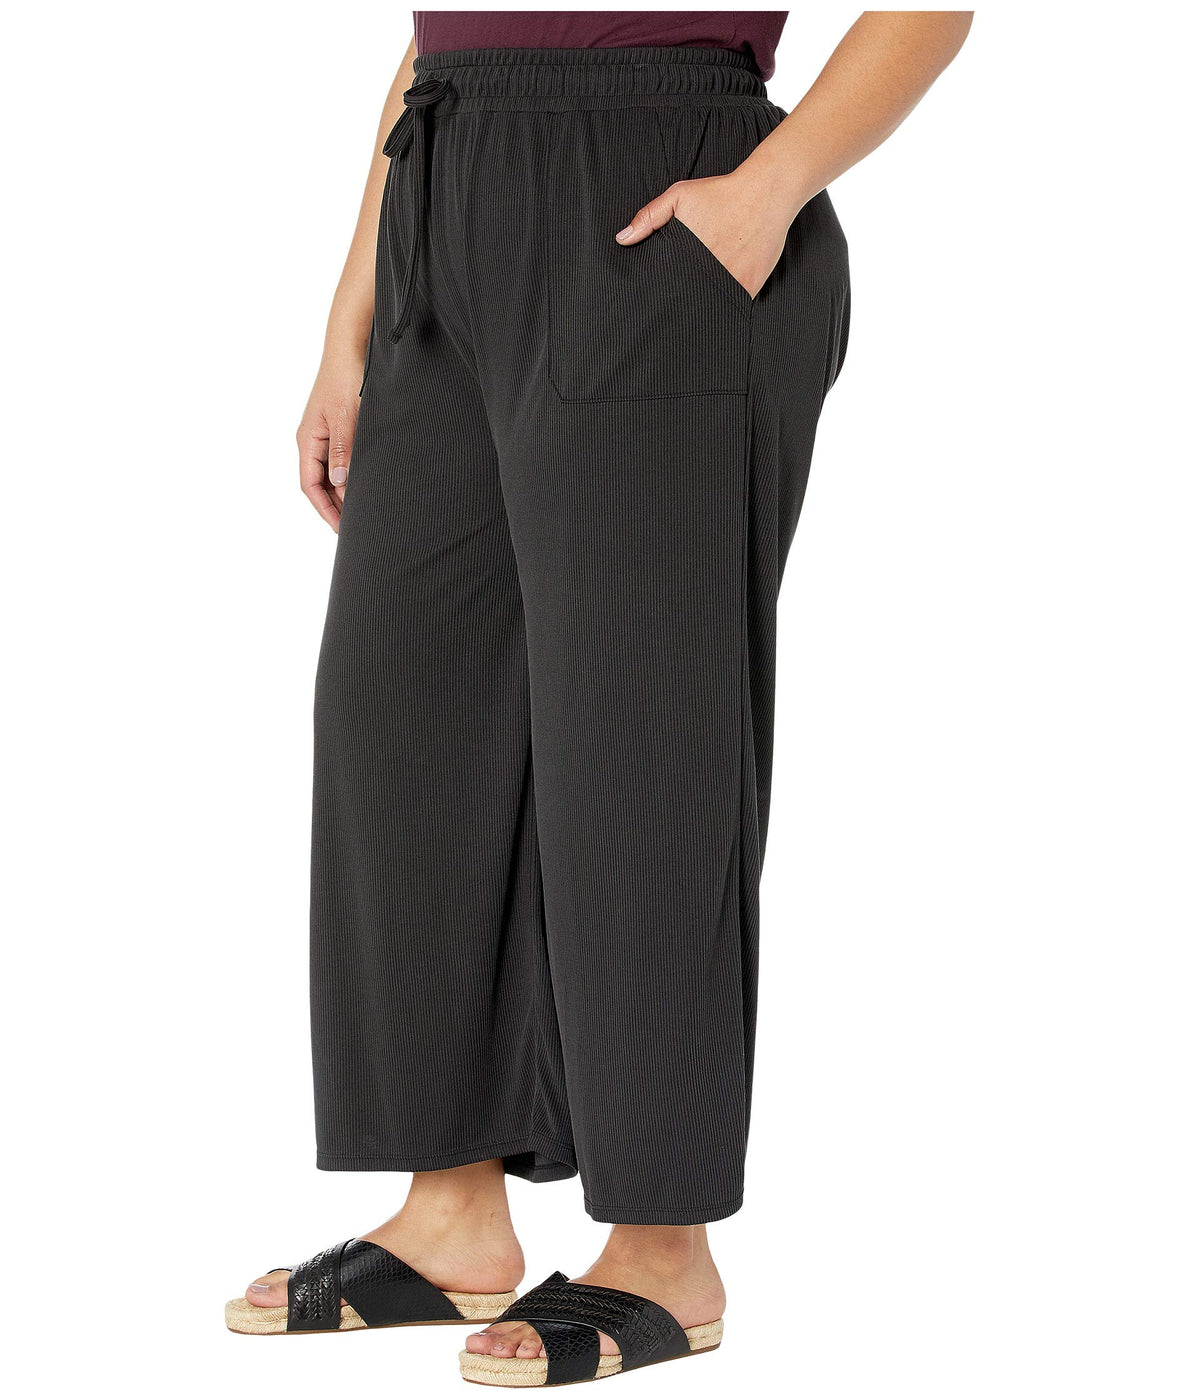 Plus Size Jetsetter Capris in Stretchy Modal Rib